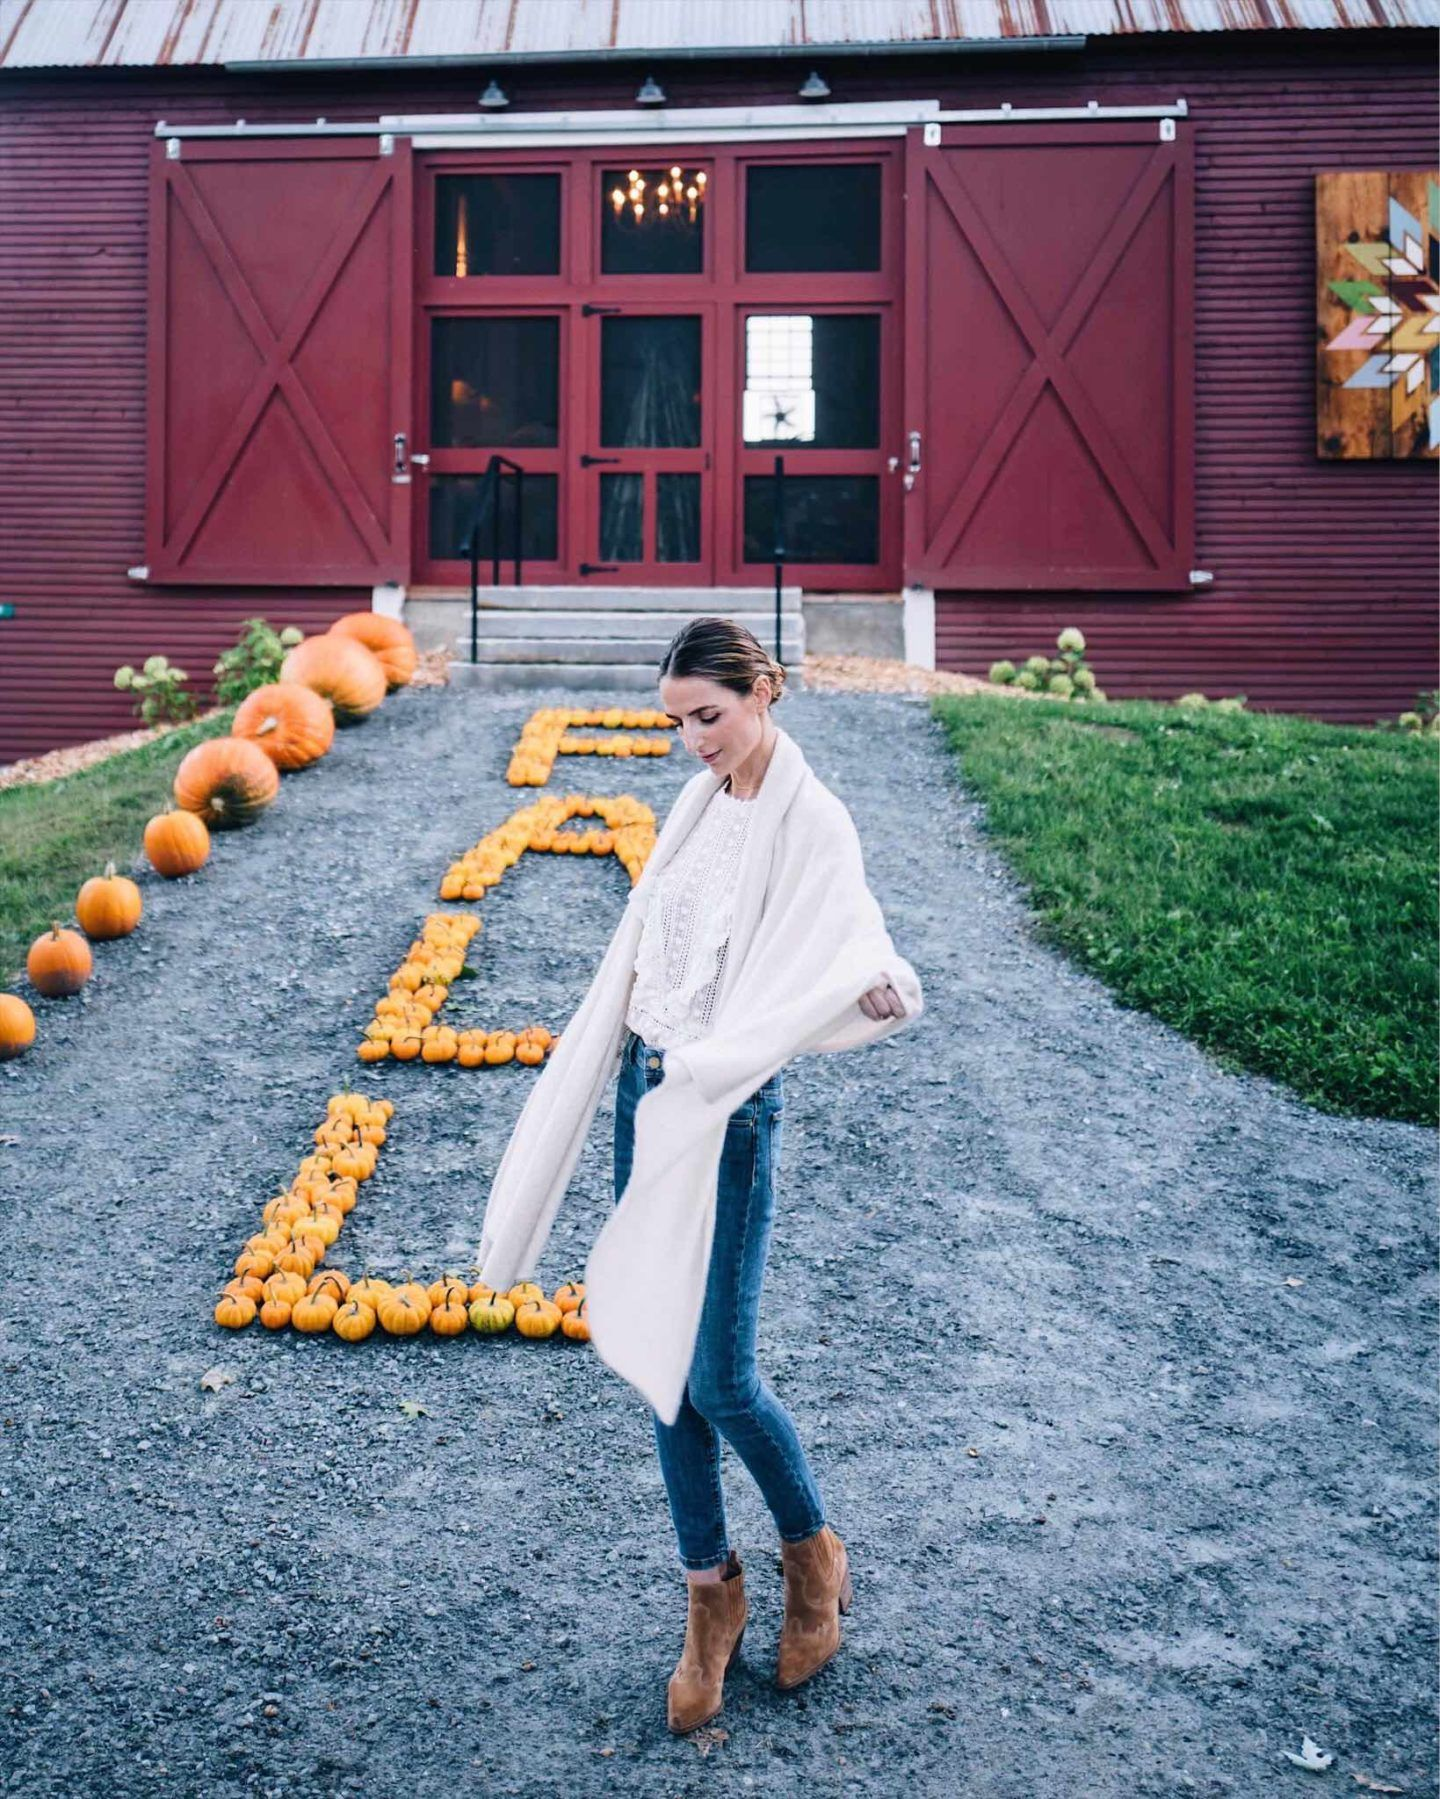 Shopbop Fall Sale Event Up to 25% off | Jess Ann Kirby